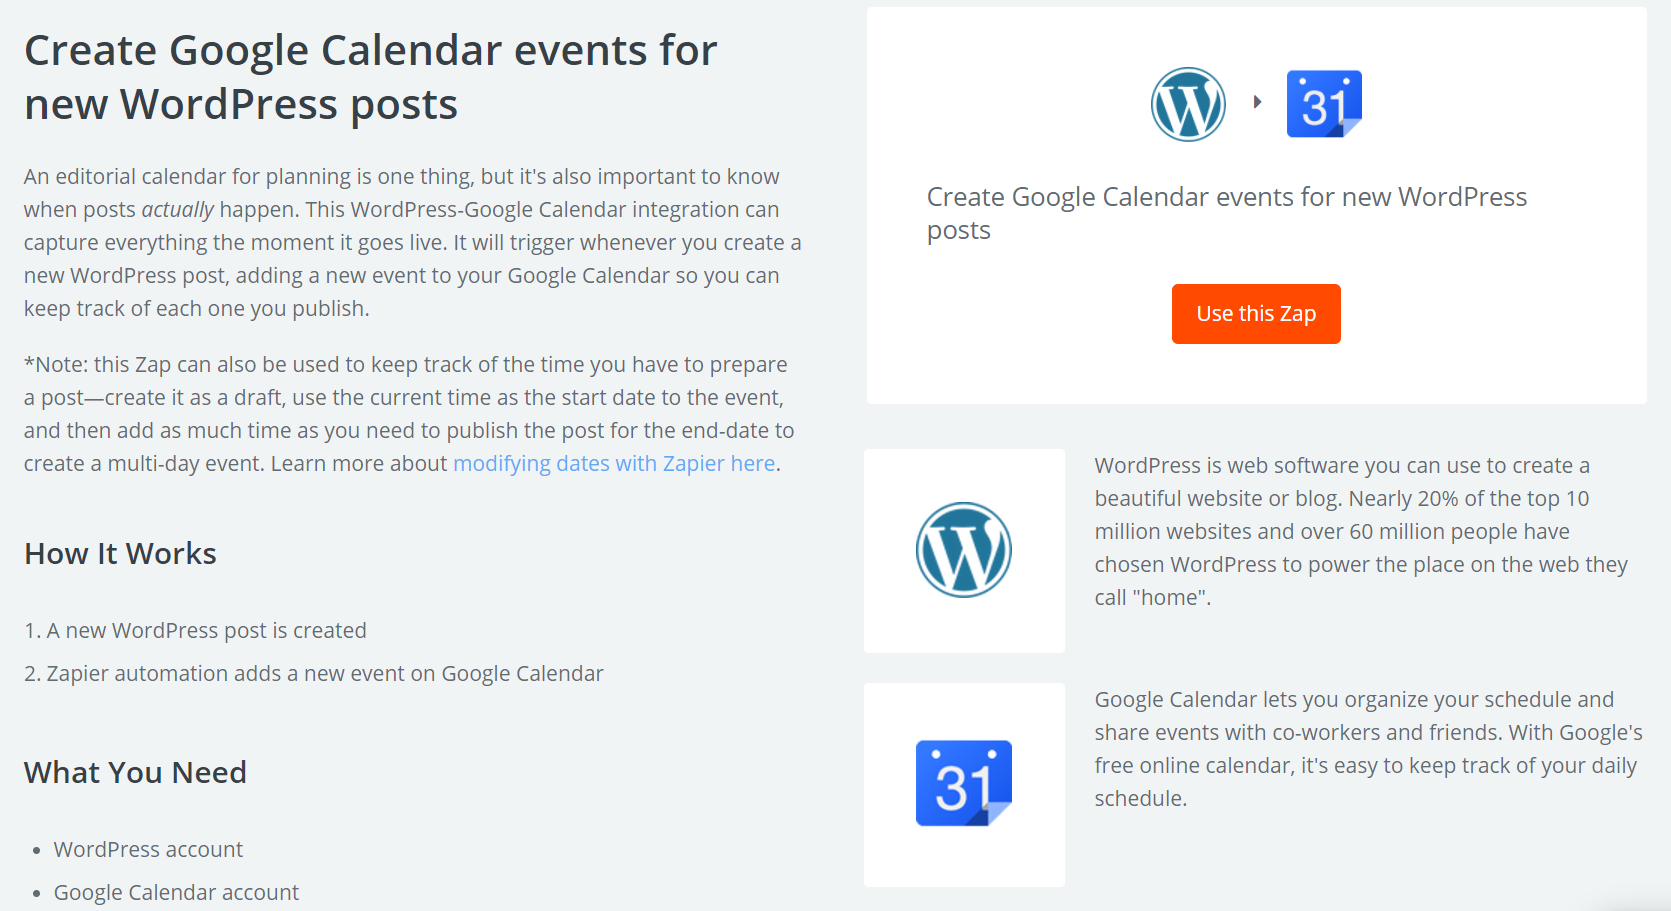 The Google Calendar integration Zap.